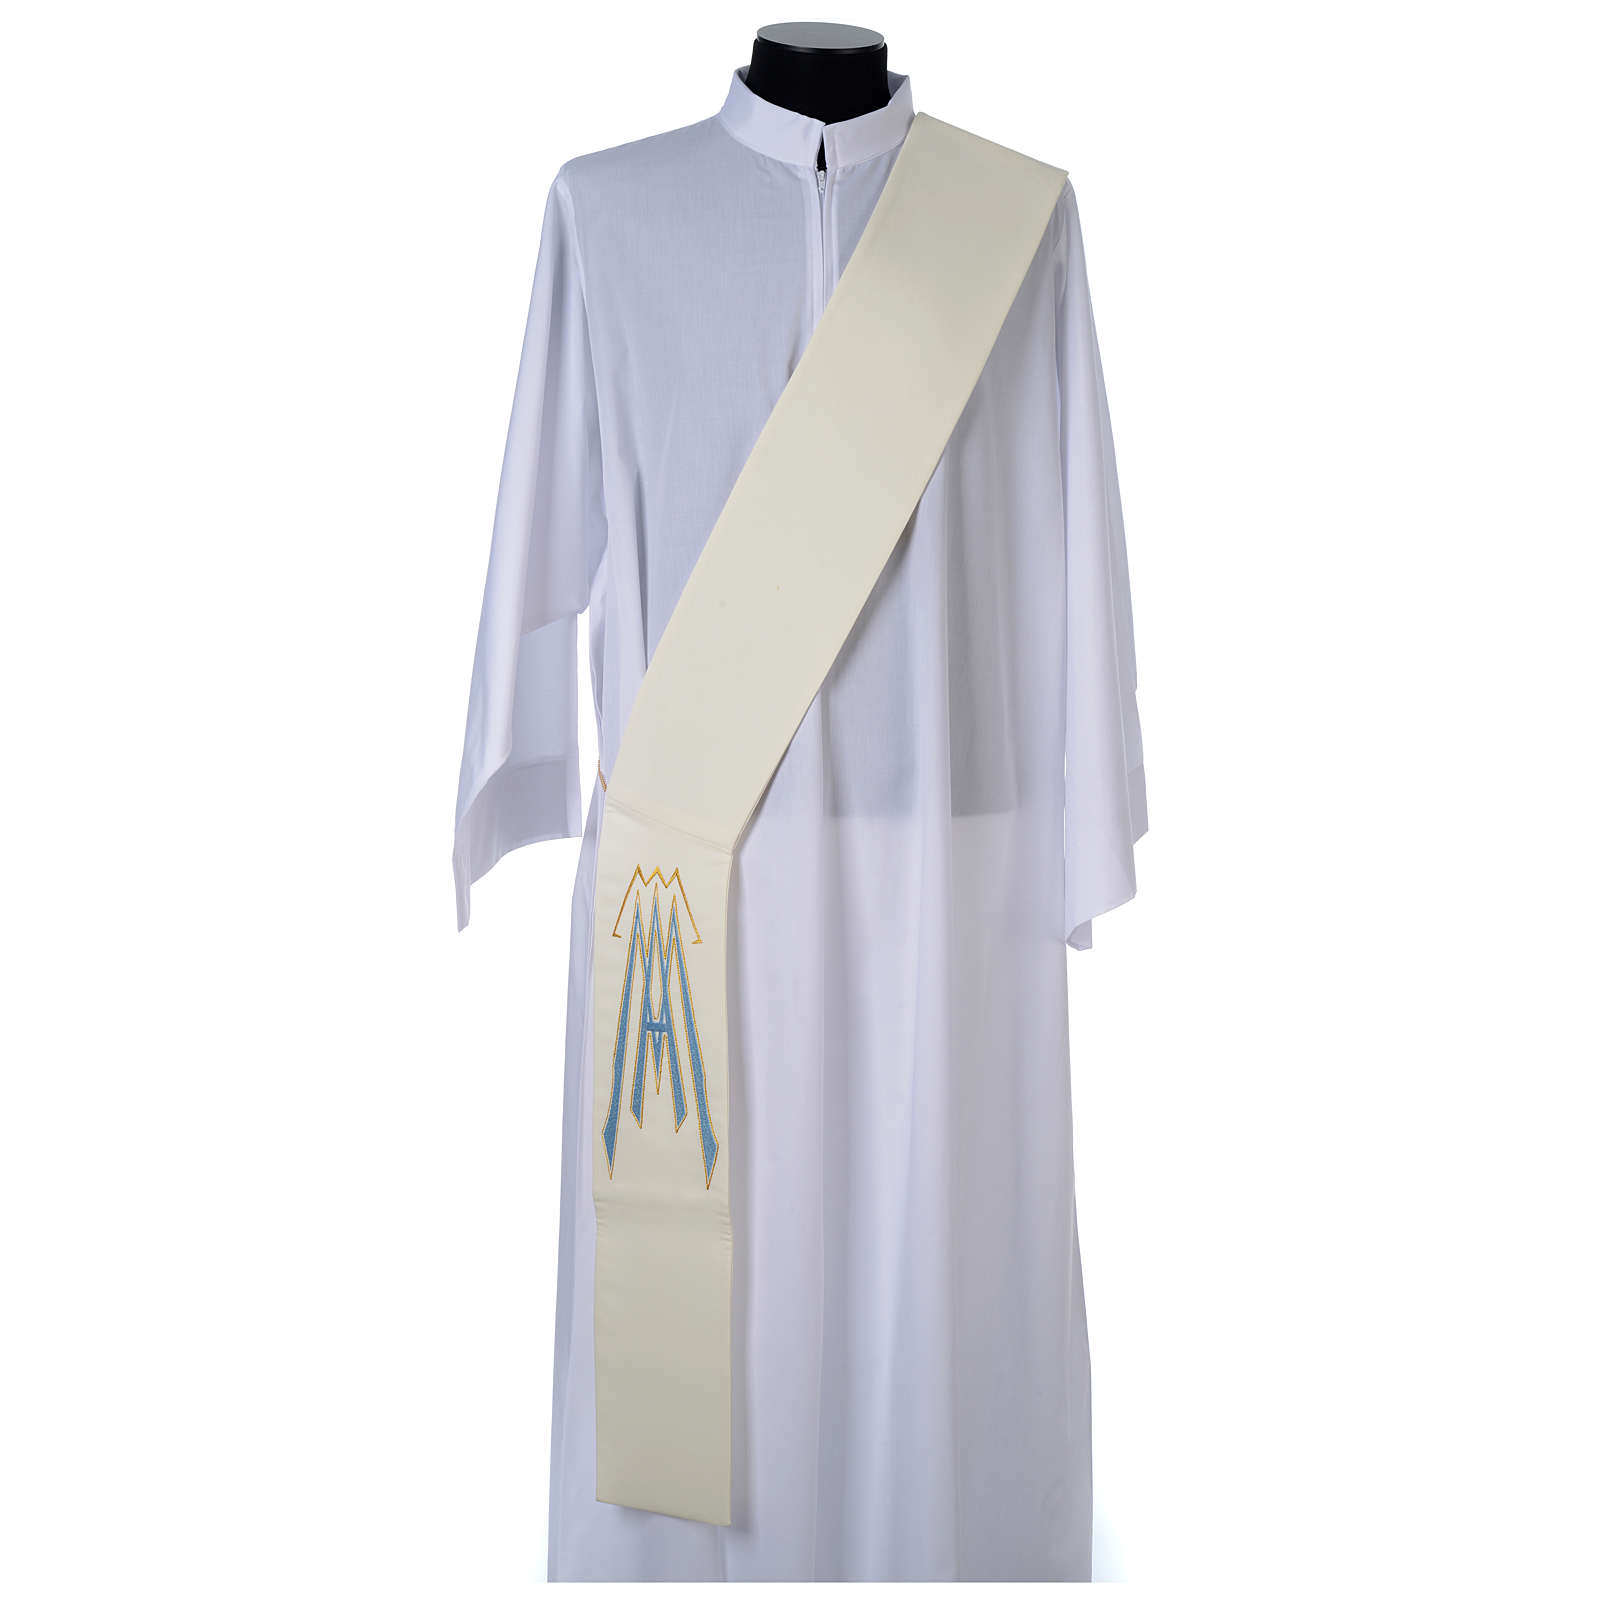 Diaconal stole in polyester with Marian symbol 4